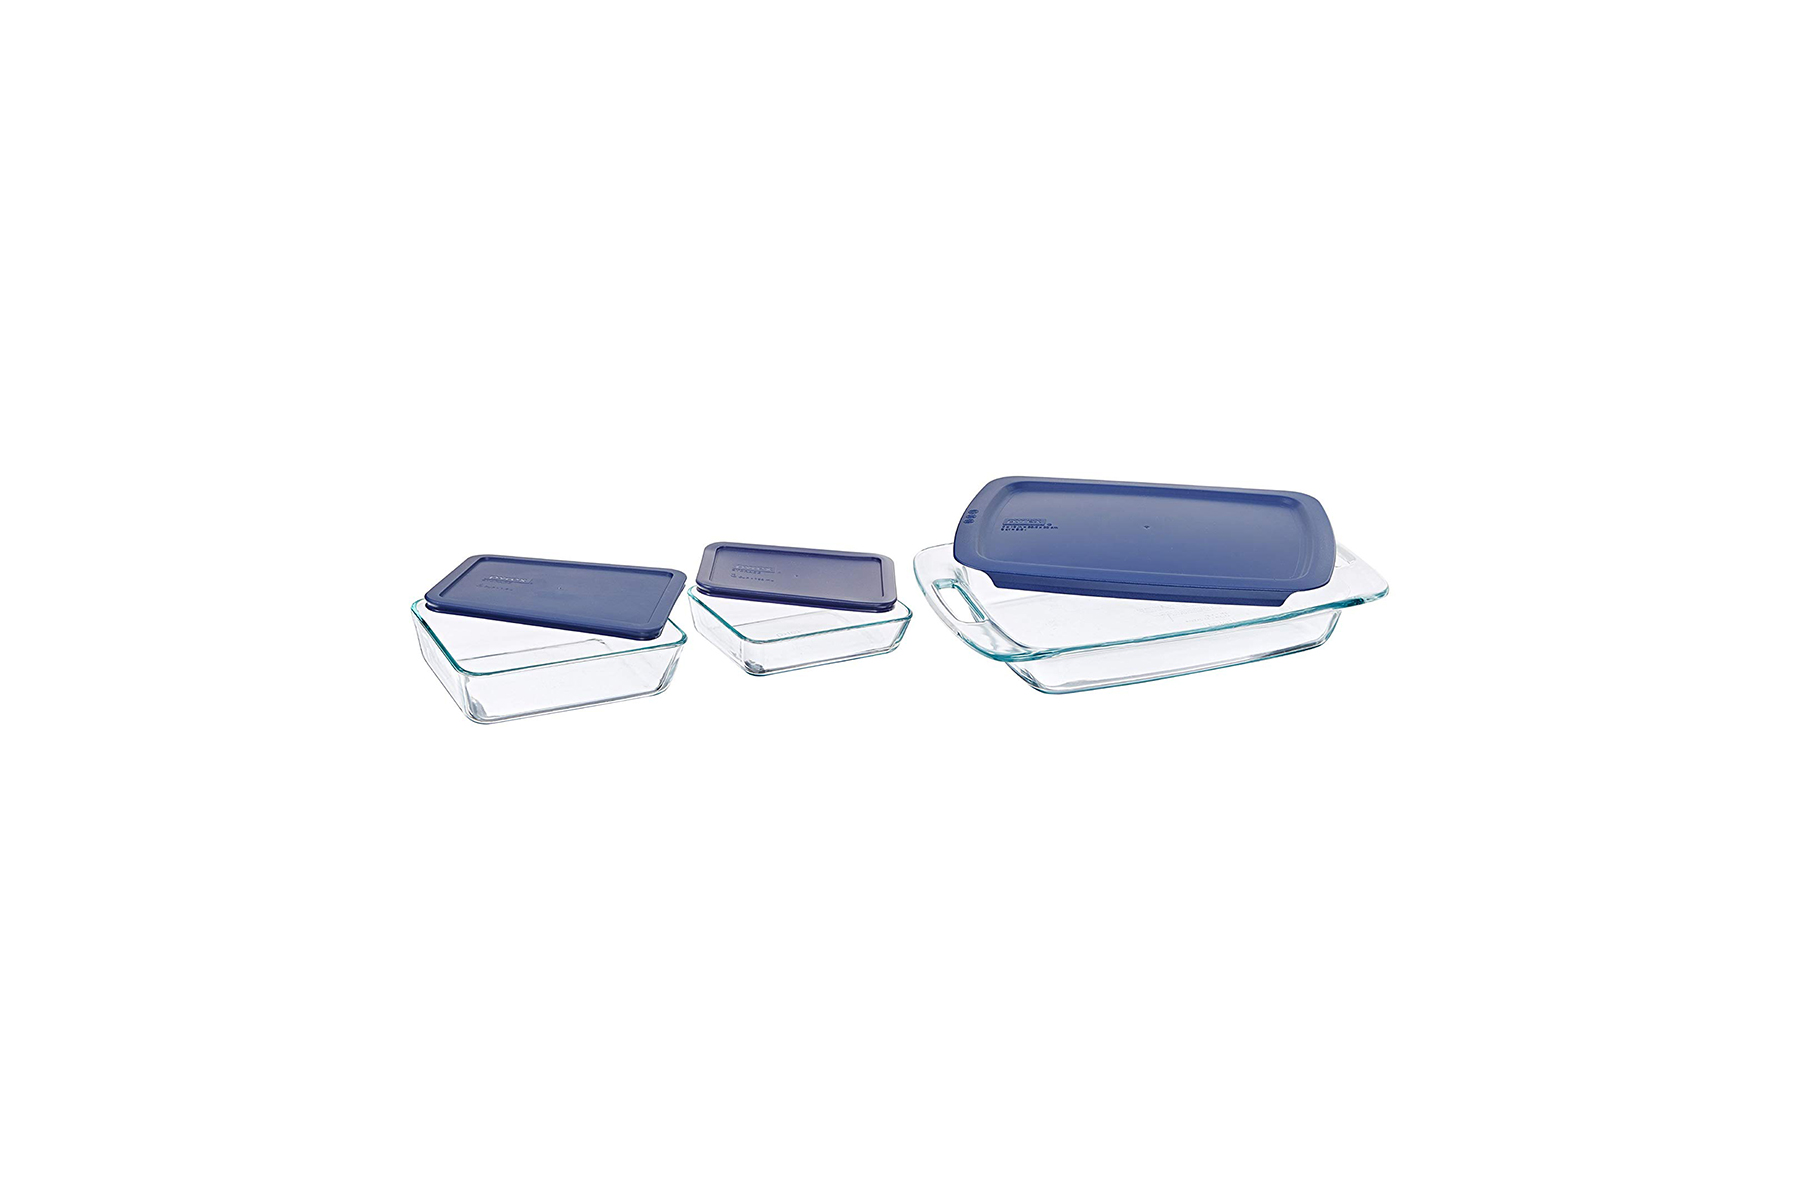 Pyrex Easy Grab 6-Piece Glass Bakeware and Food Storage